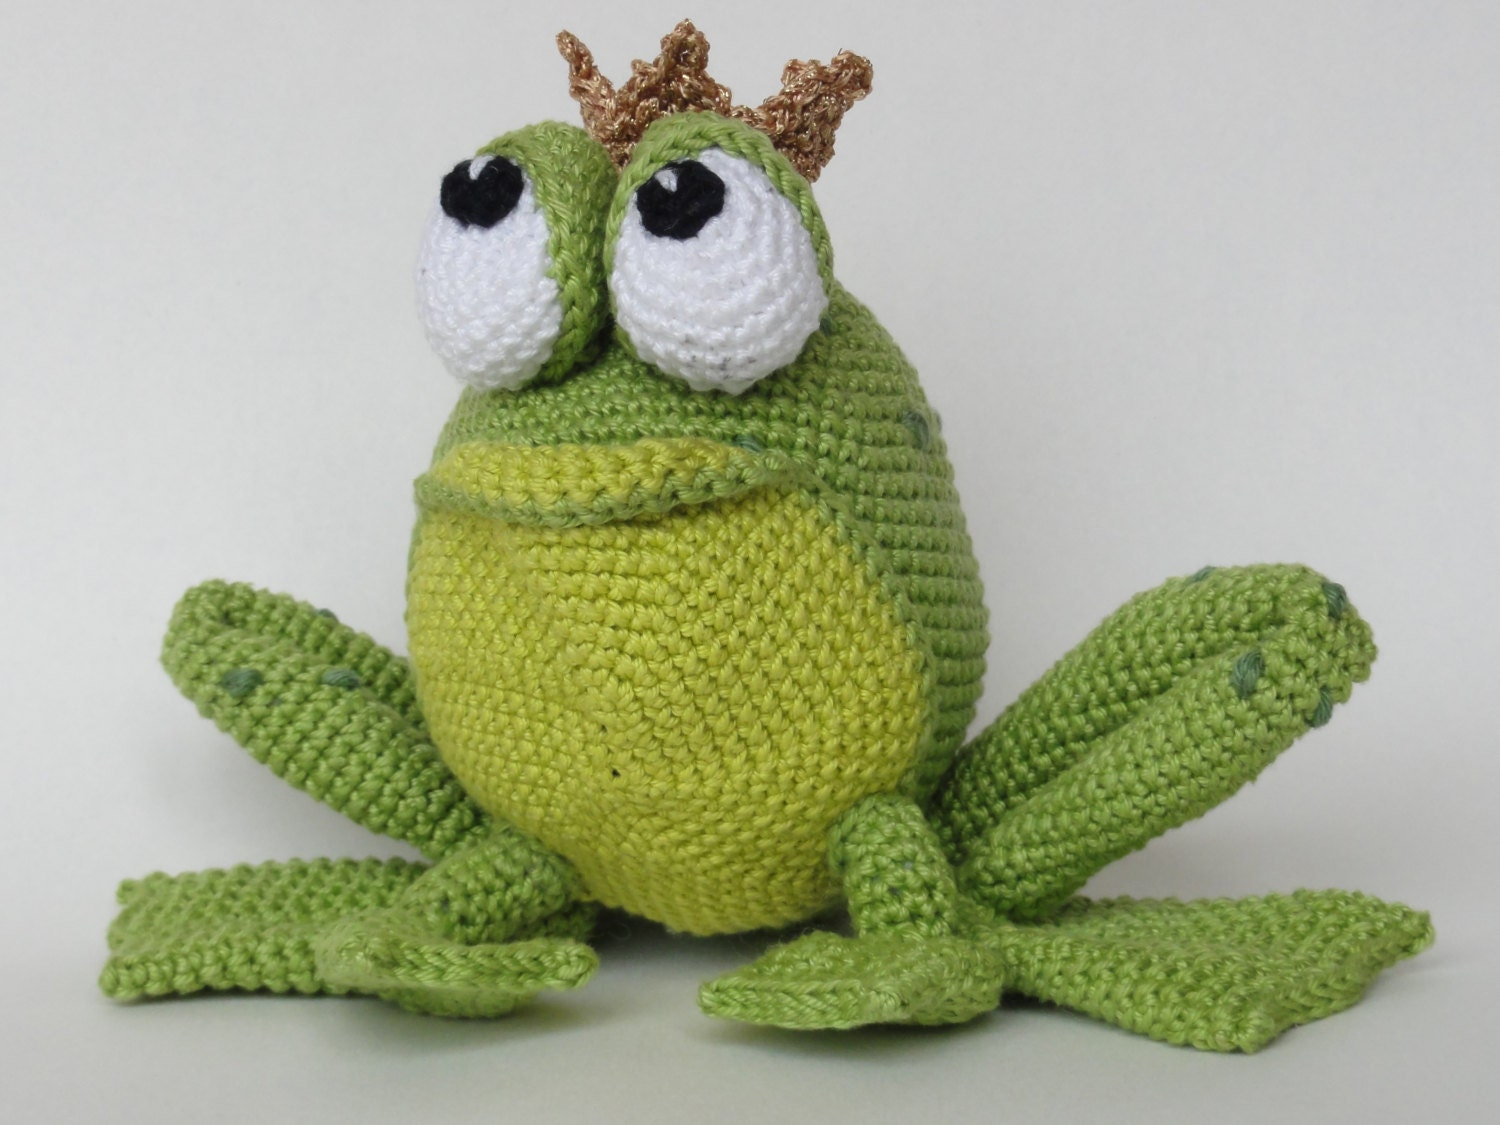 amigurumi crochet pattern henri le frog from ildikko on etsy studio. Black Bedroom Furniture Sets. Home Design Ideas